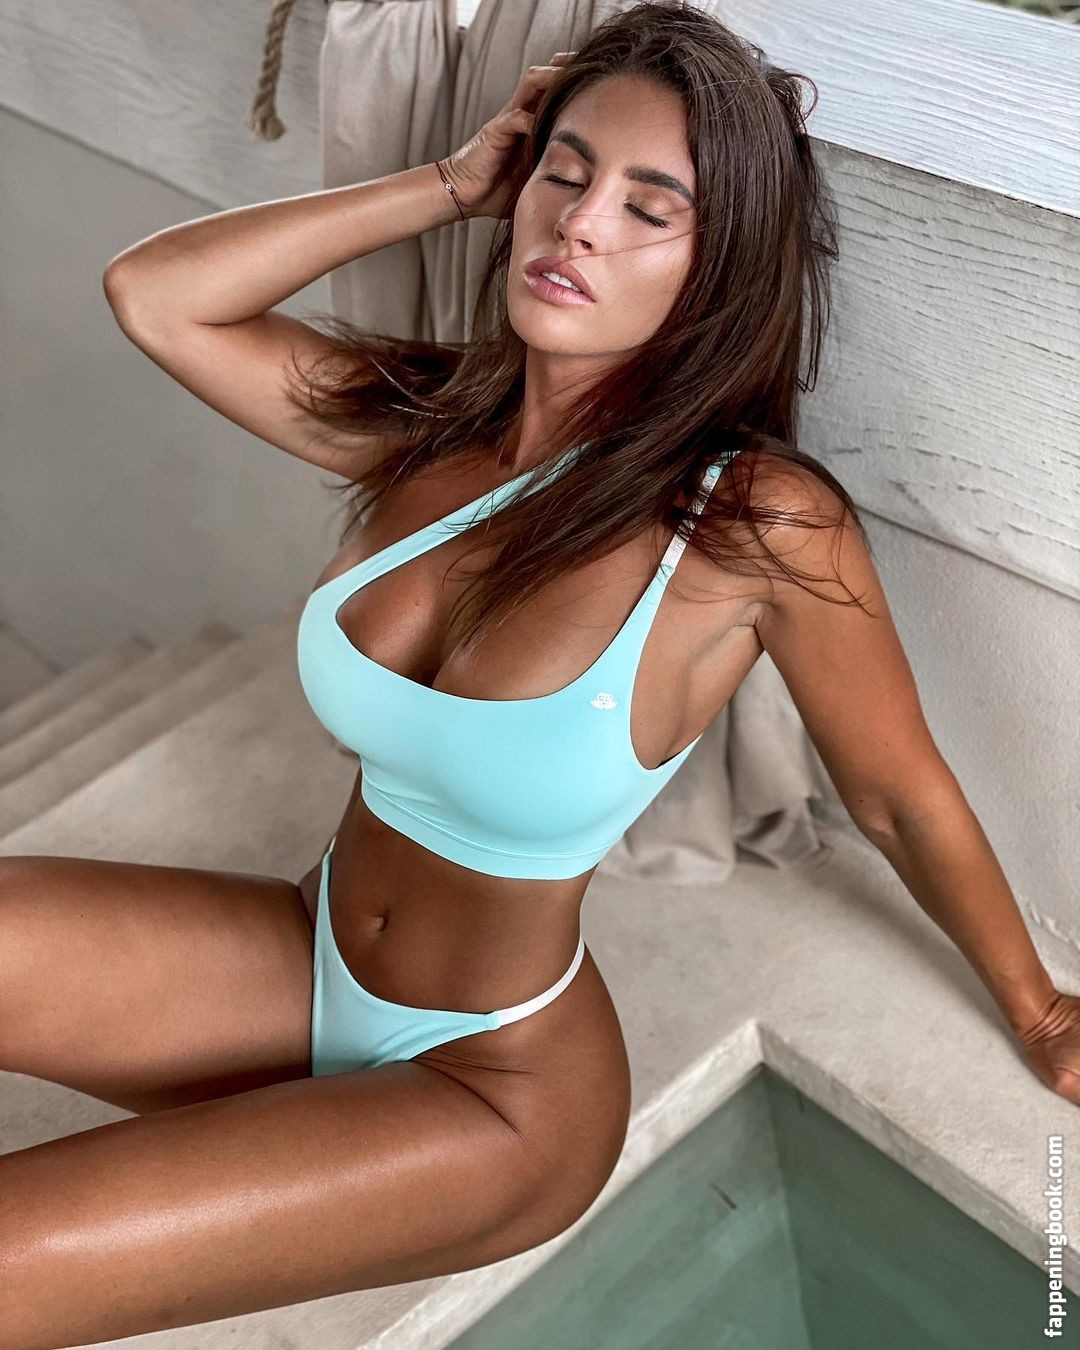 Superstar Emily Lucia Nude Images